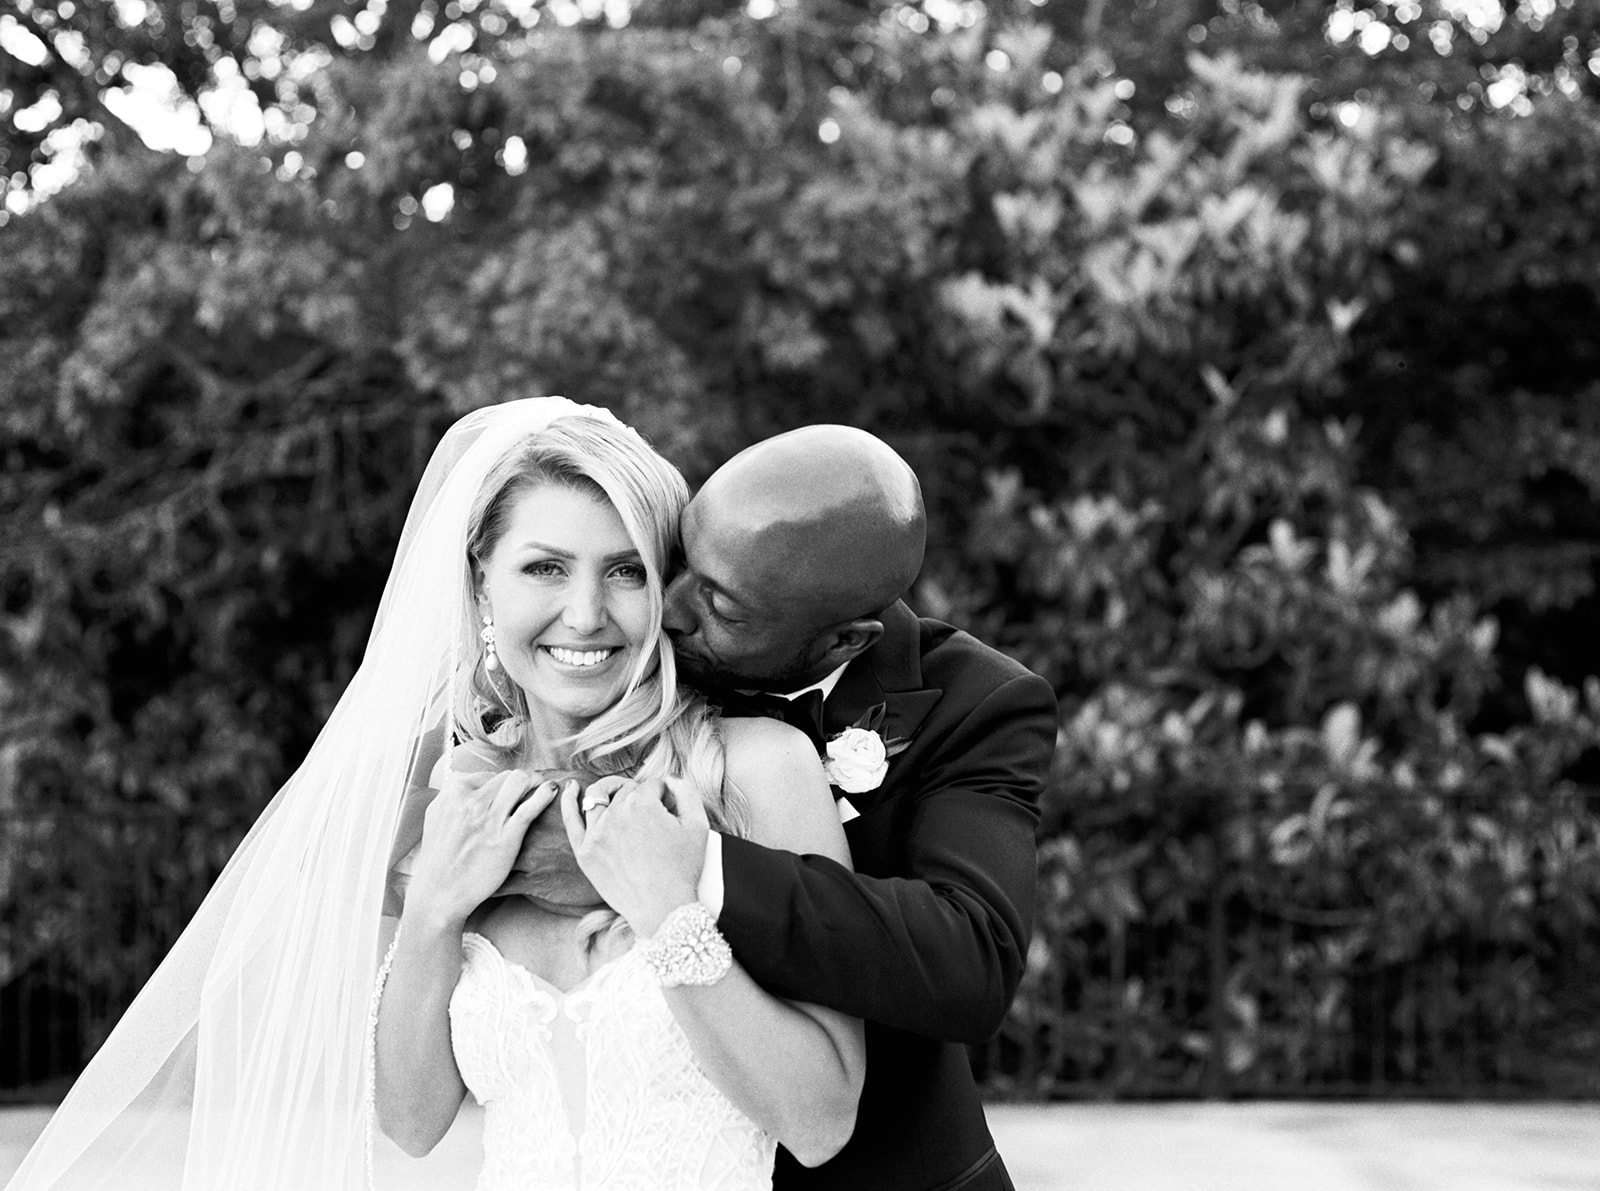 Villa Antonia wedding, Villa Antonia wedding photos, Villa Antonia wedding photographer, Austin wedding photographer, Austin wedding venue, Fine Art Wedding